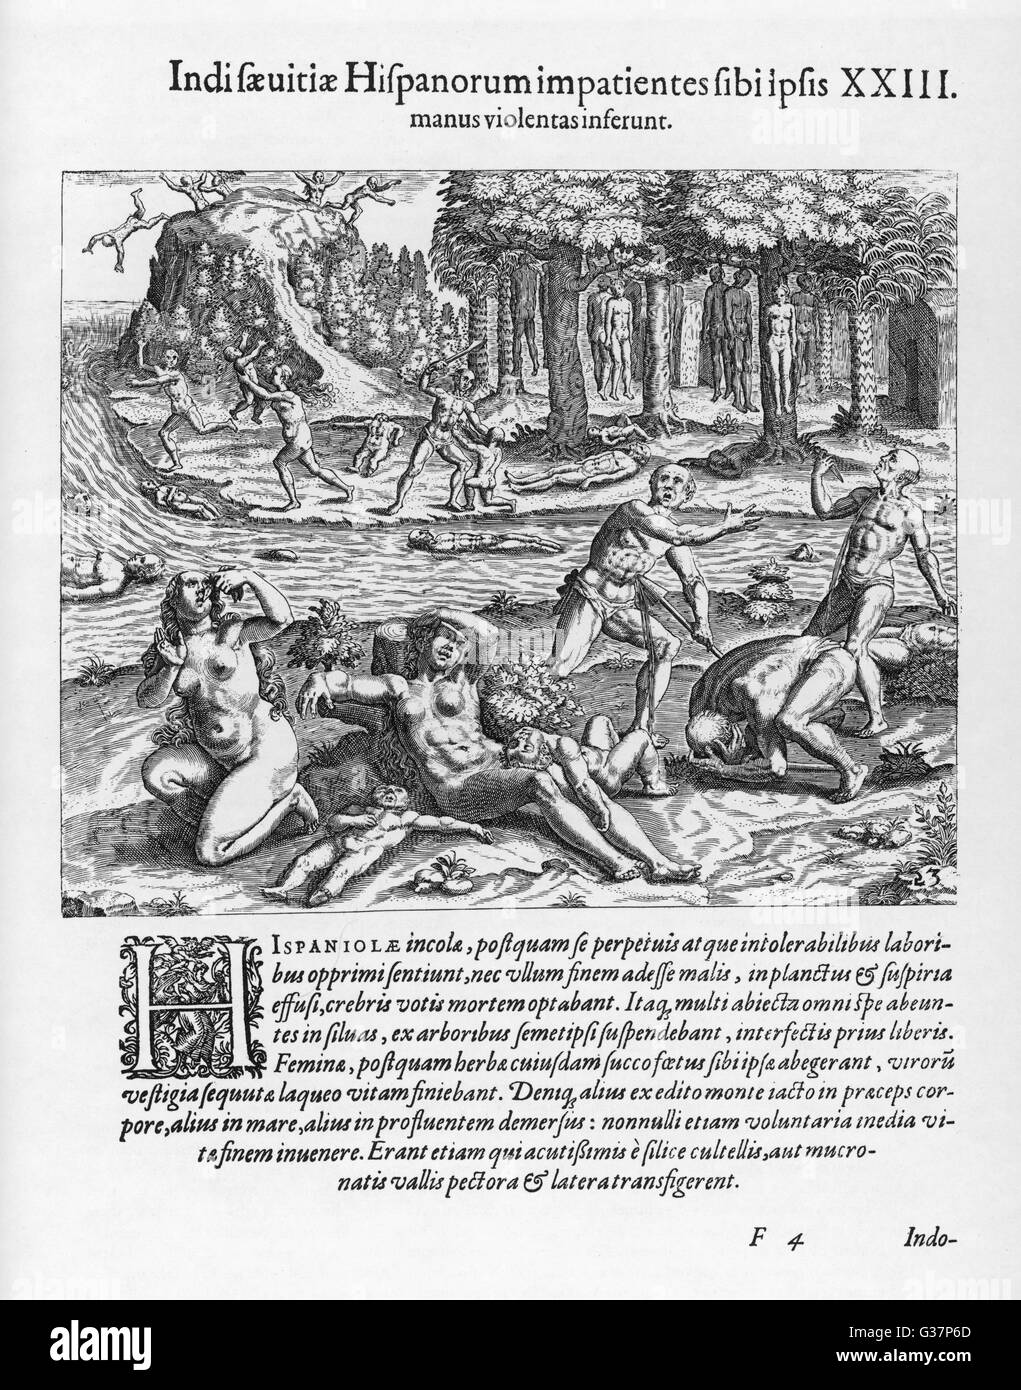 Natives of Haiti, desperate because of the cruelty and greed of the Spaniards, kill themselves and their children. - Stock Image